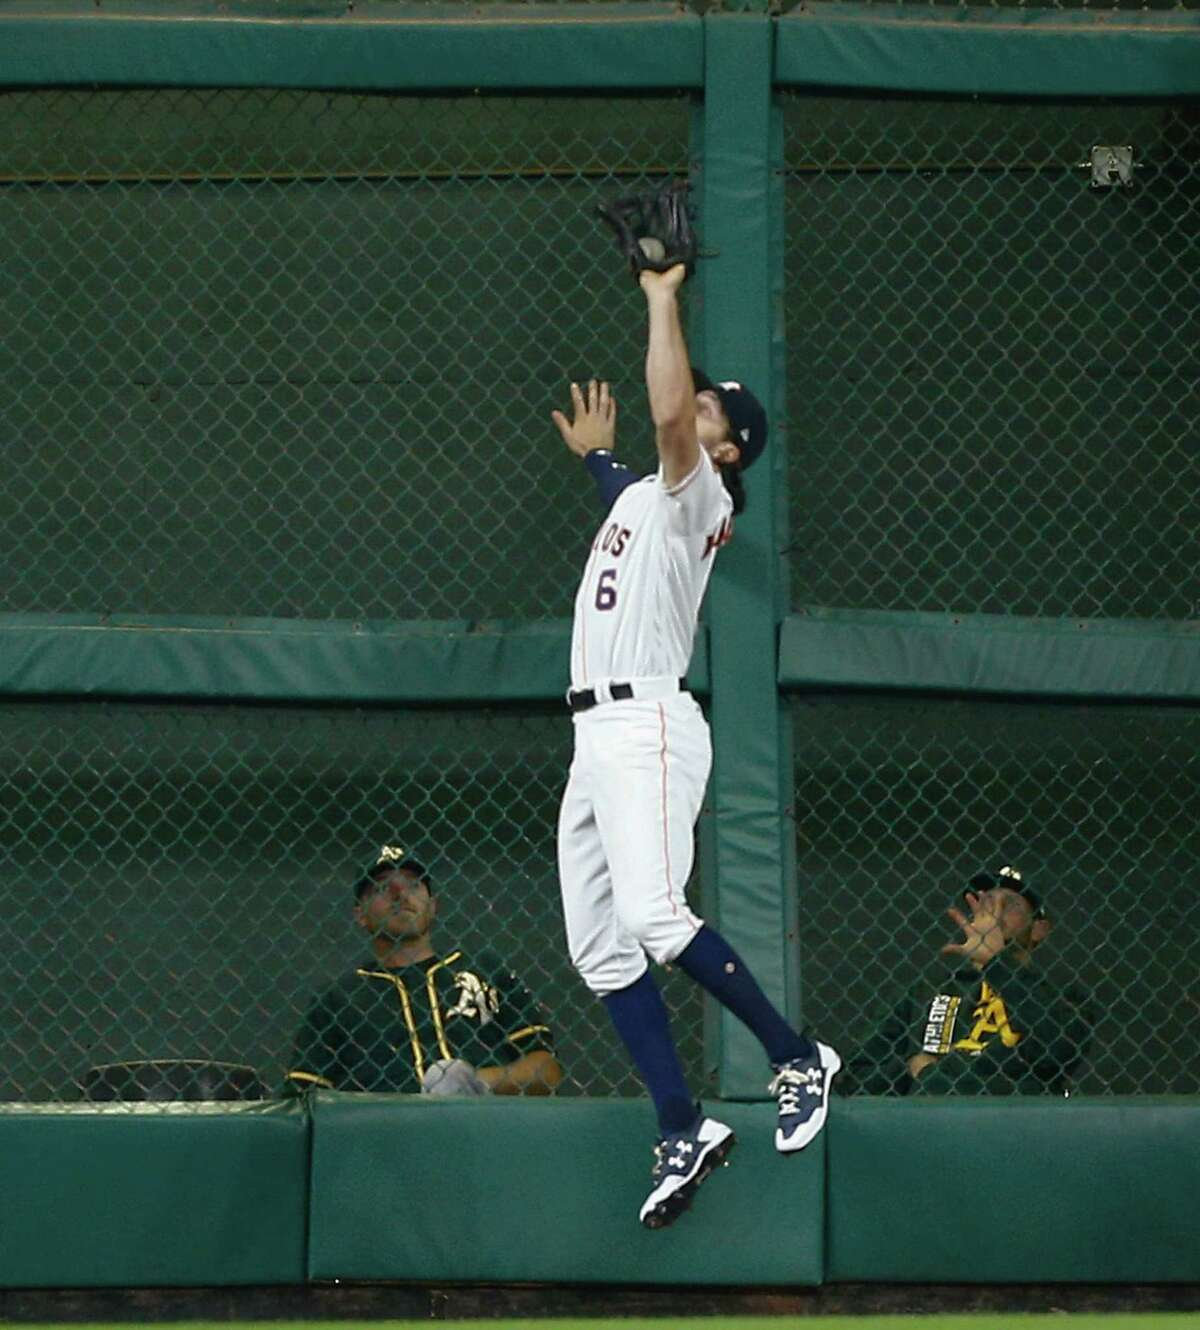 HOUSTON, TX - JUNE 29: Jake Marisnick #6 of the Houston Astros makes a leaping catcg at the wall on a fly ball by Jed Lowrie #8 of the Oakland Athletics in the third inning at Minute Maid Park on June 29, 2017 in Houston, Texas. (Photo by Bob Levey/Getty Images) ORG XMIT: 700011429